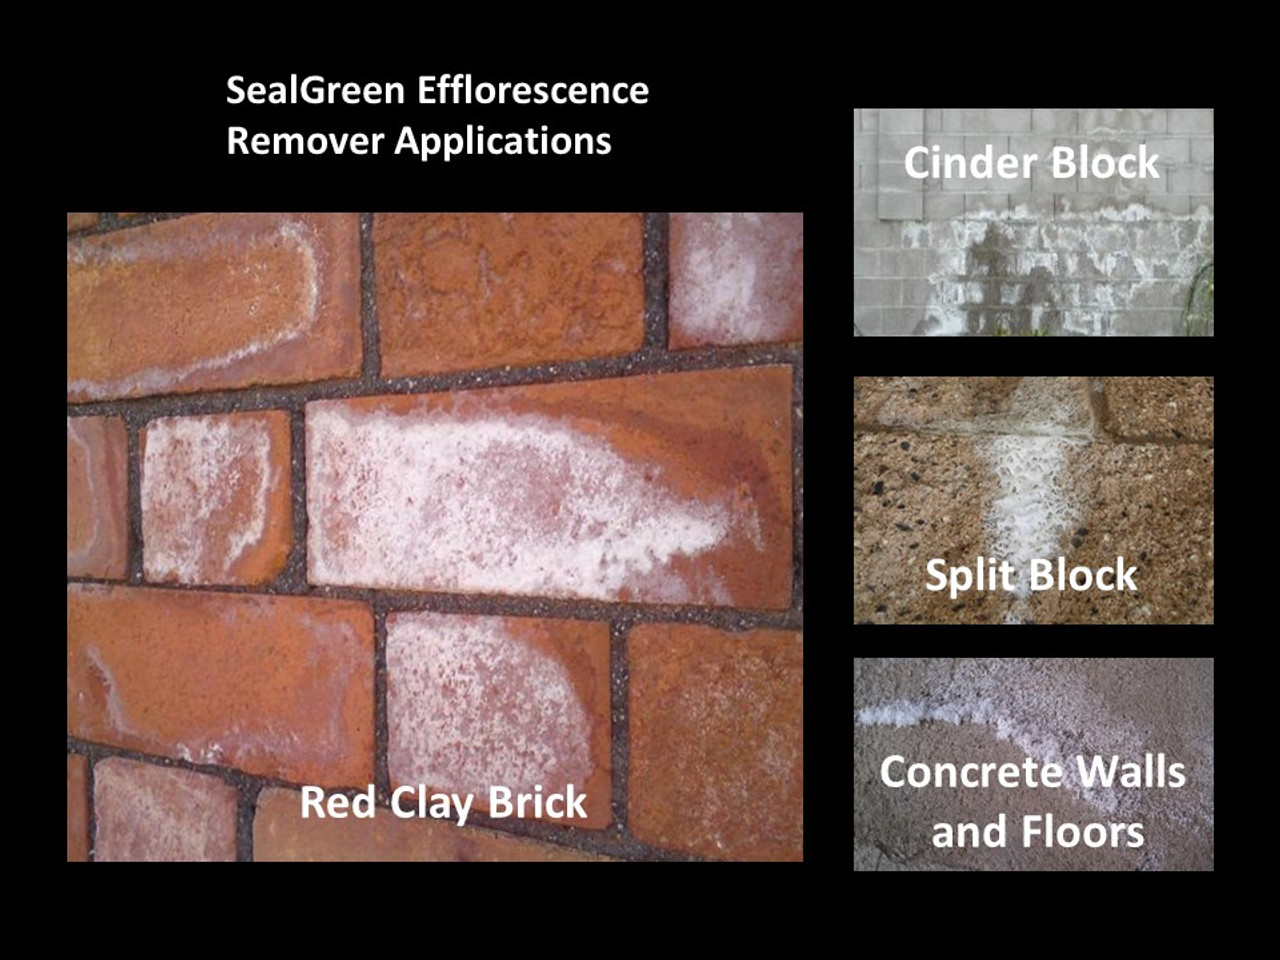 SealGreen Efflorescence Remover cleans red clay bricks, cinder blocks, pavers, concrete floors and walls, and split face blocks.